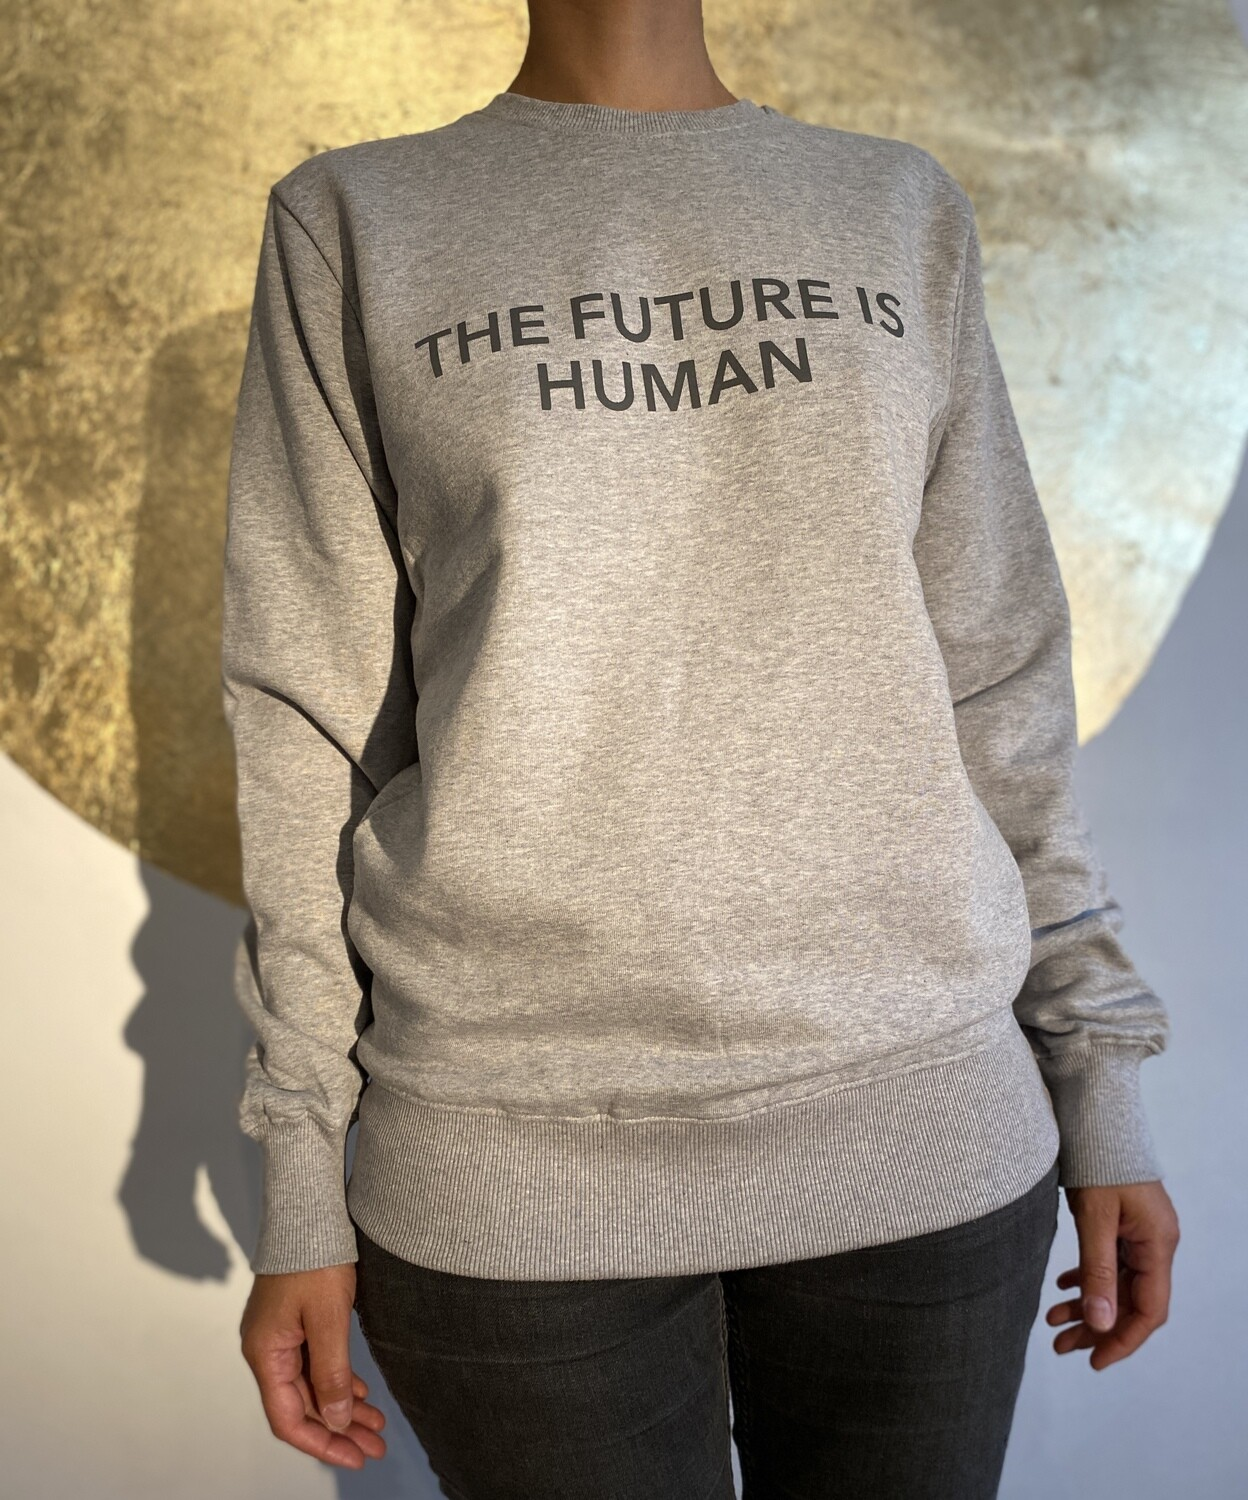 THE FUTURE IS HUMAN by The Lovers, Sweater – grau / Druck grau